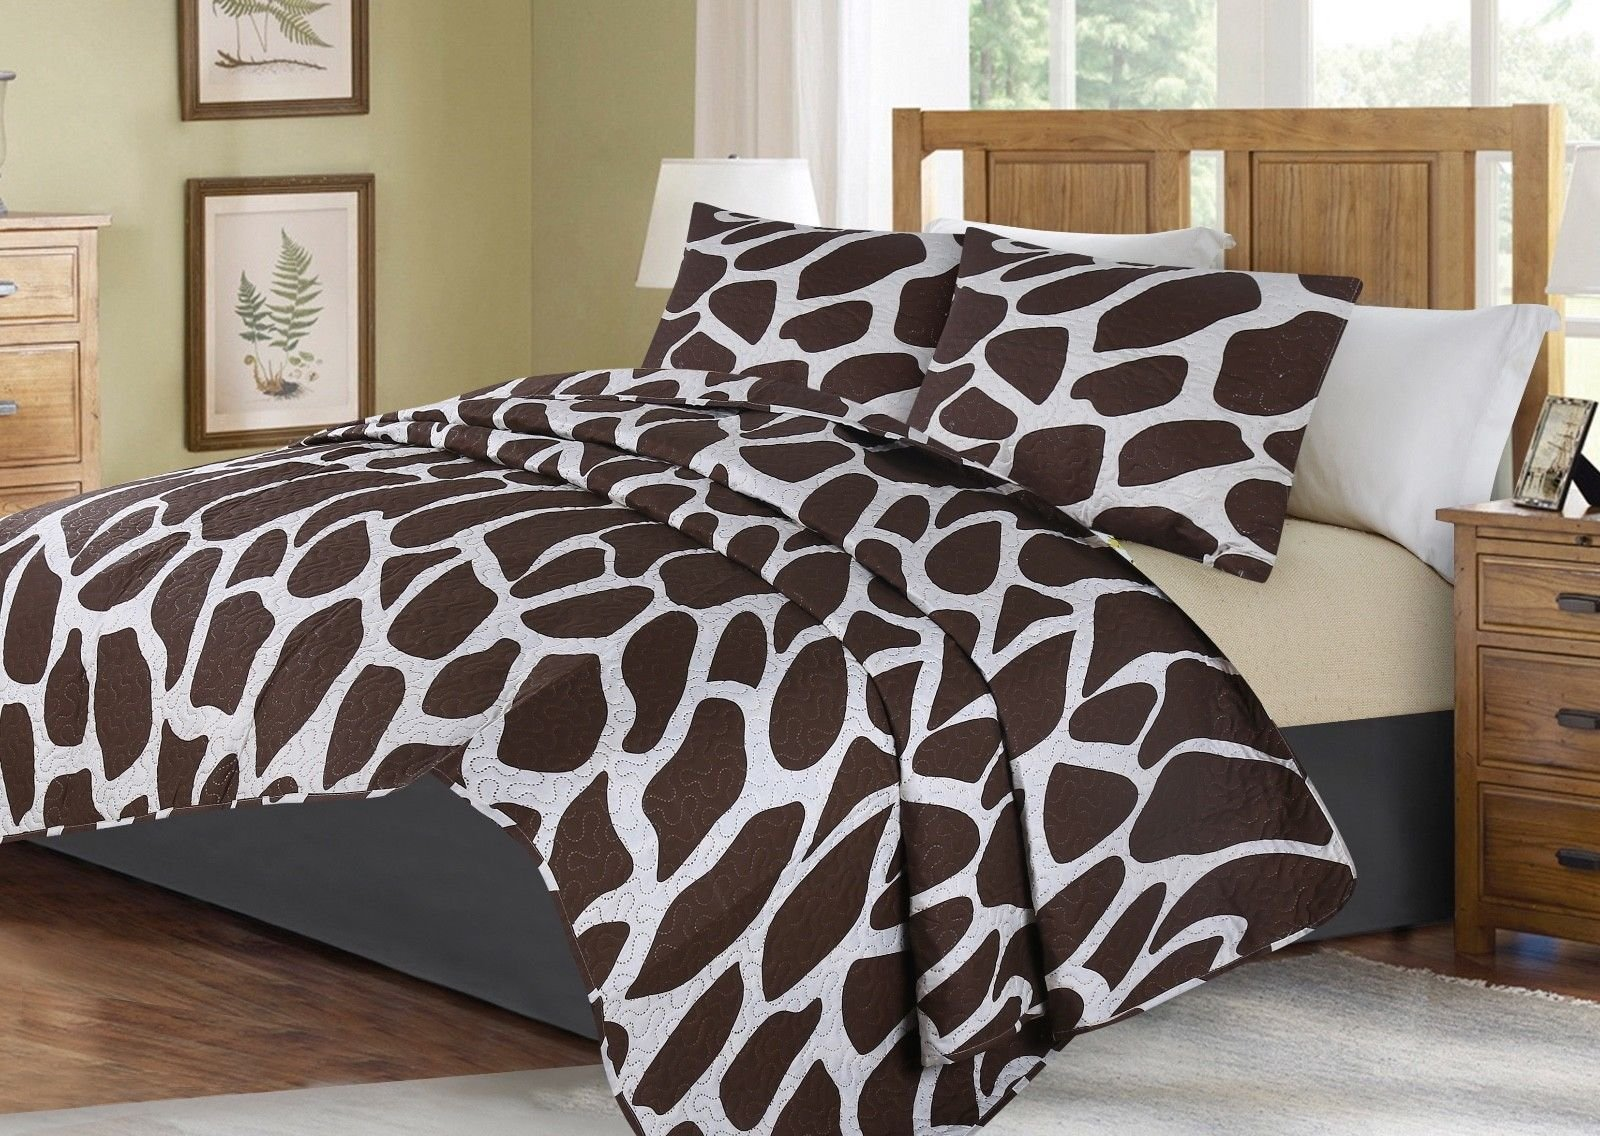 no!no! Printed Animal Designs Bedspread Coverlet Quilt Set with Pillow Shams Animal 1# Size King